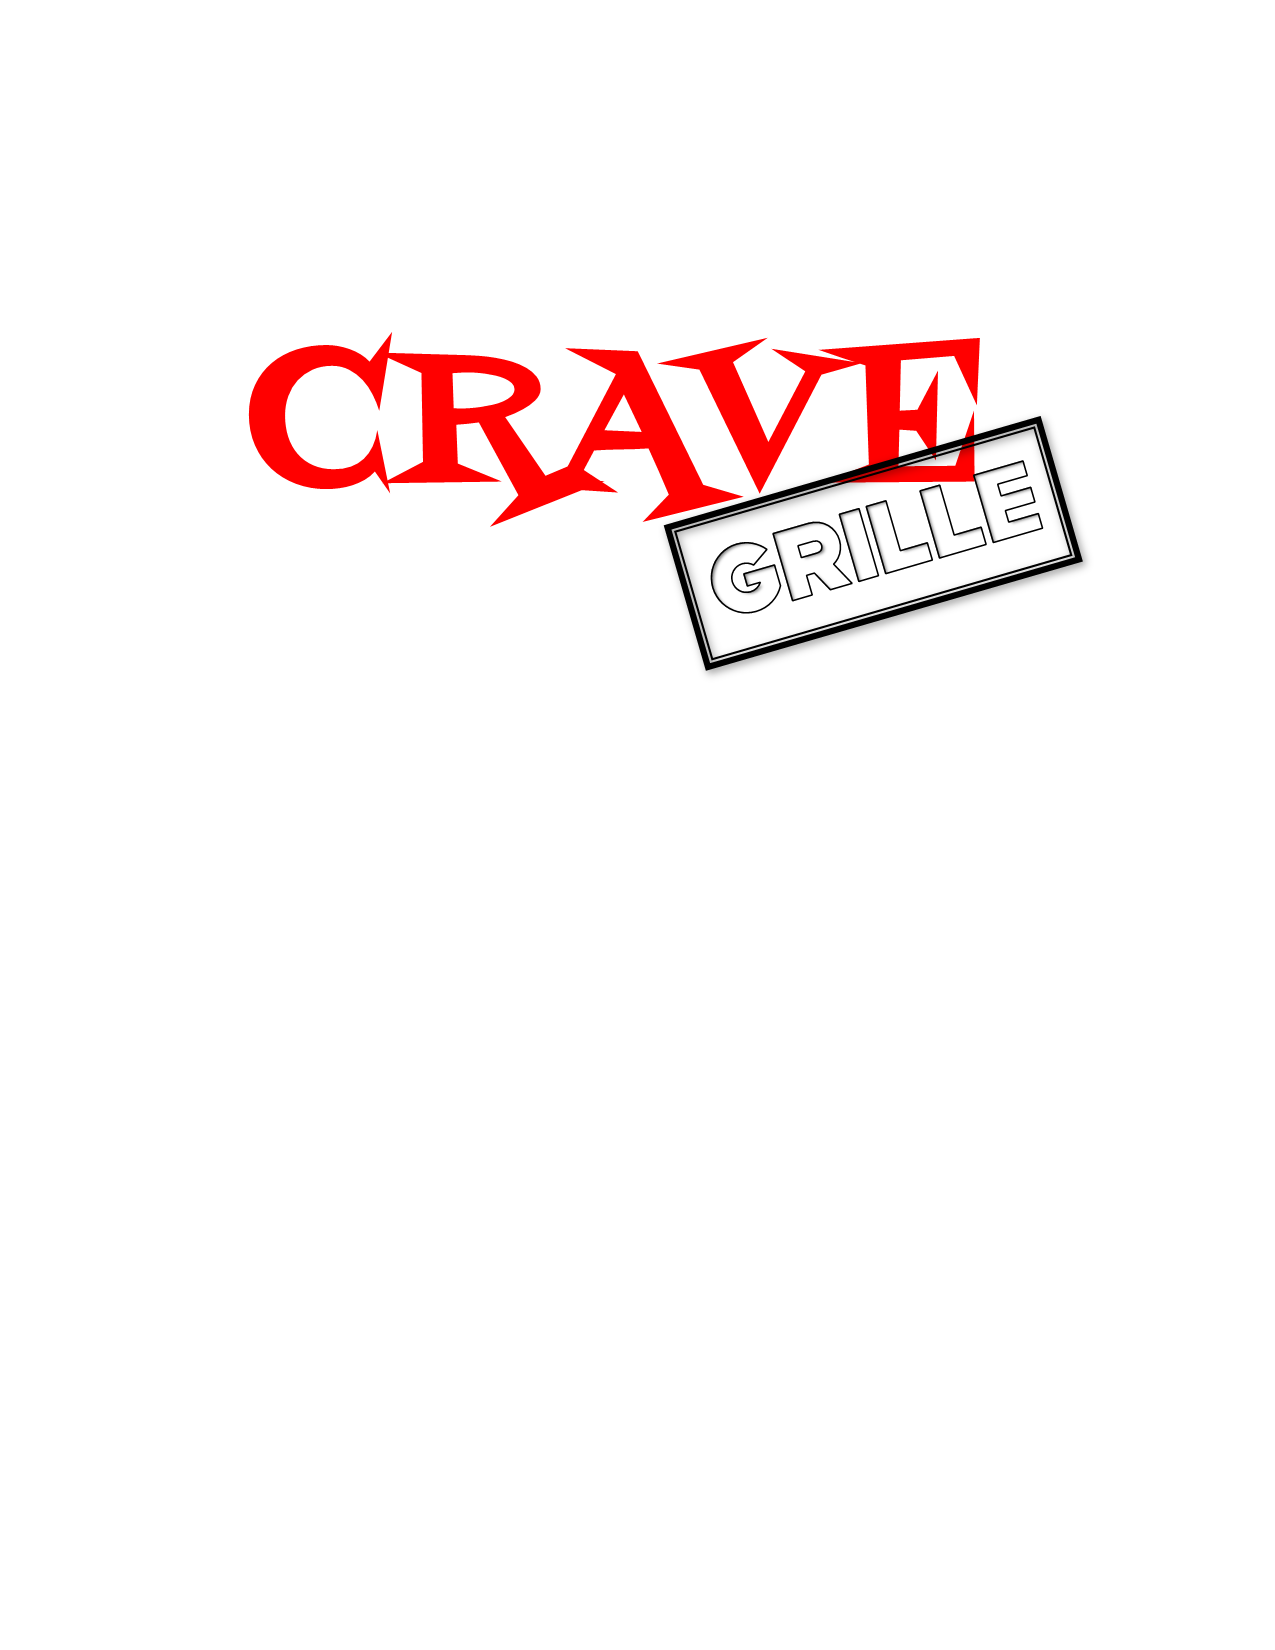 Crave Grille Trans with White